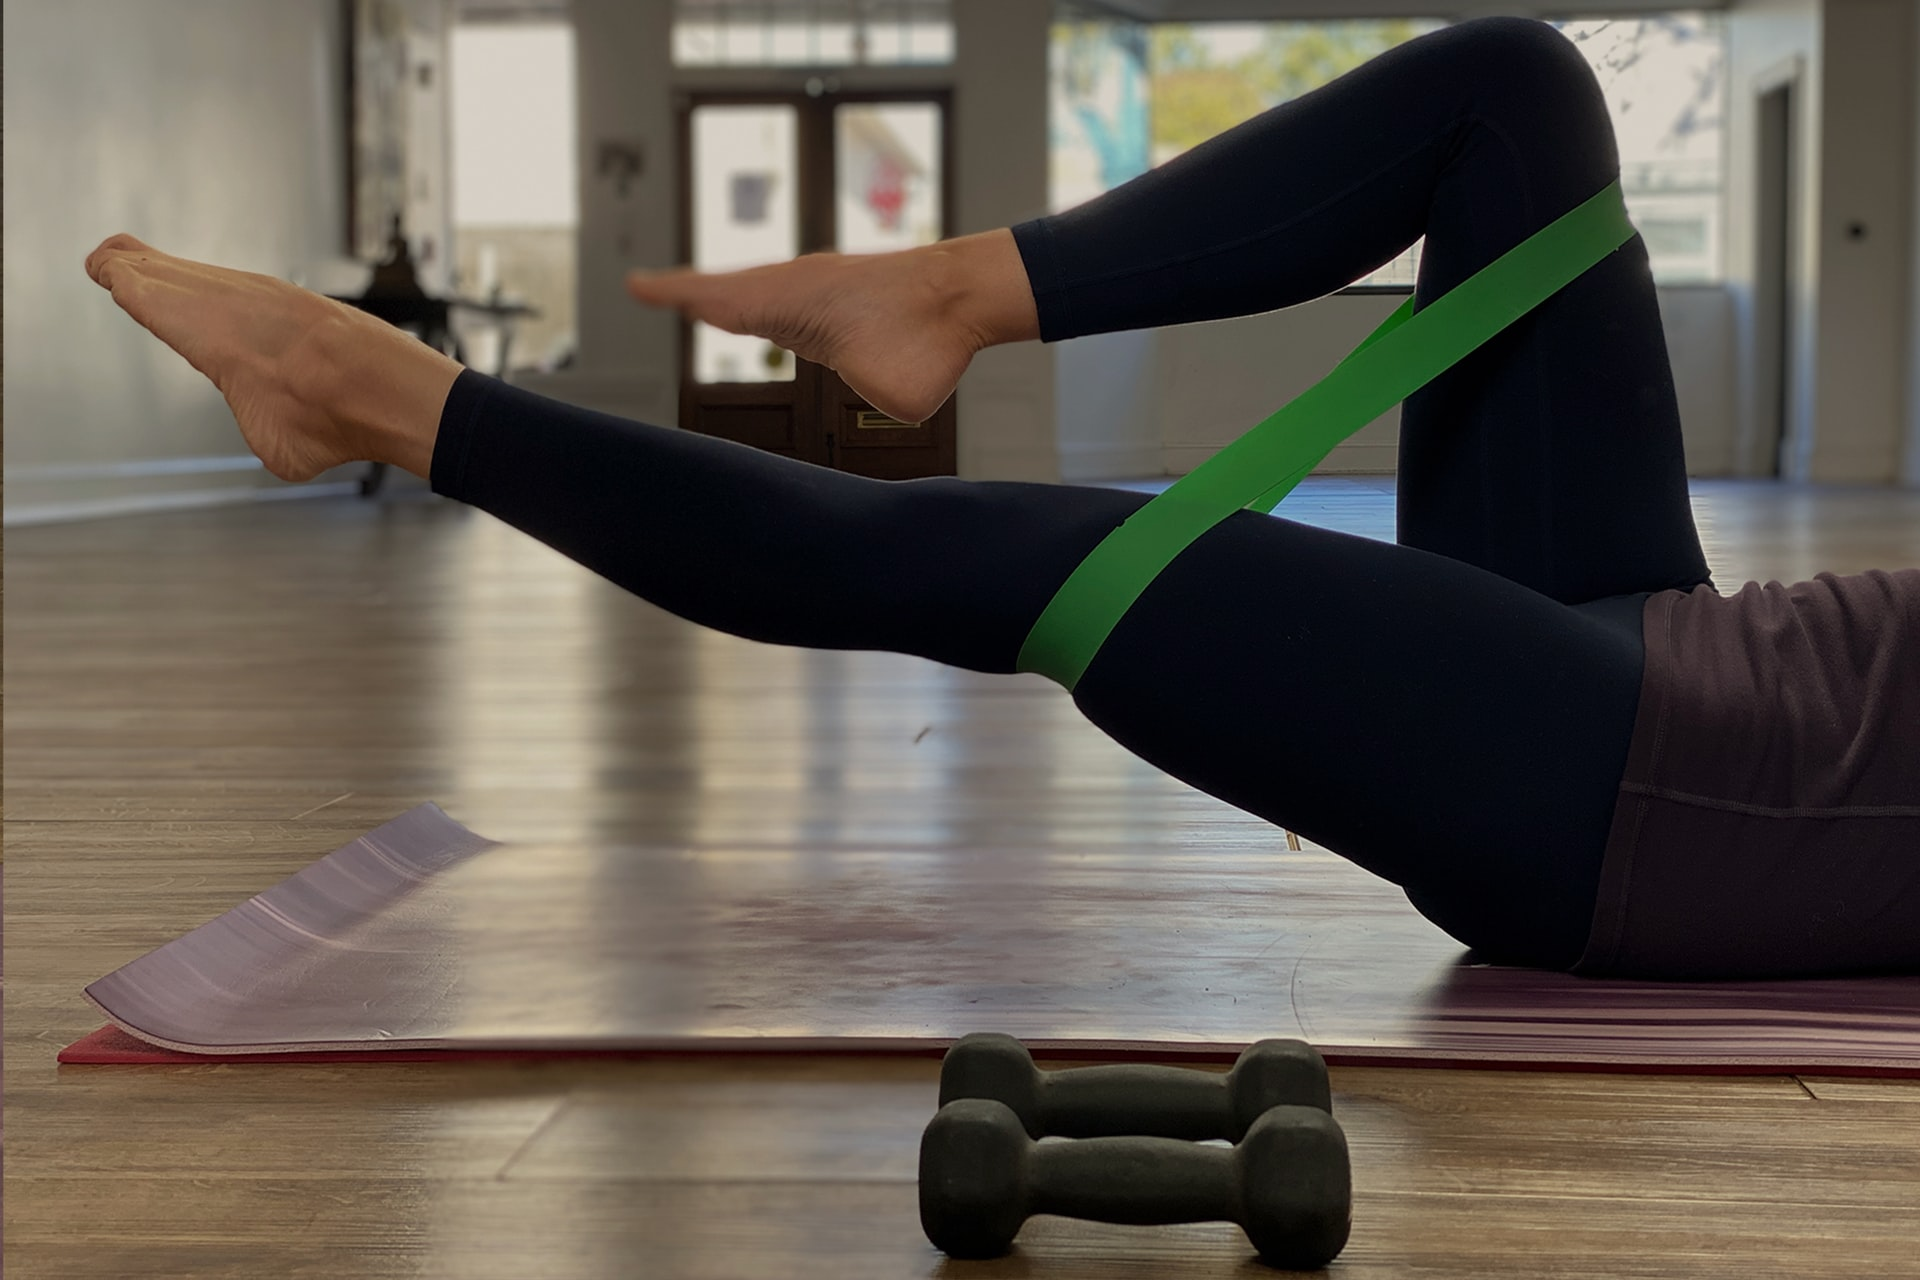 This image shows a women exercising on a yoga matt with resistance bands and dumbells.